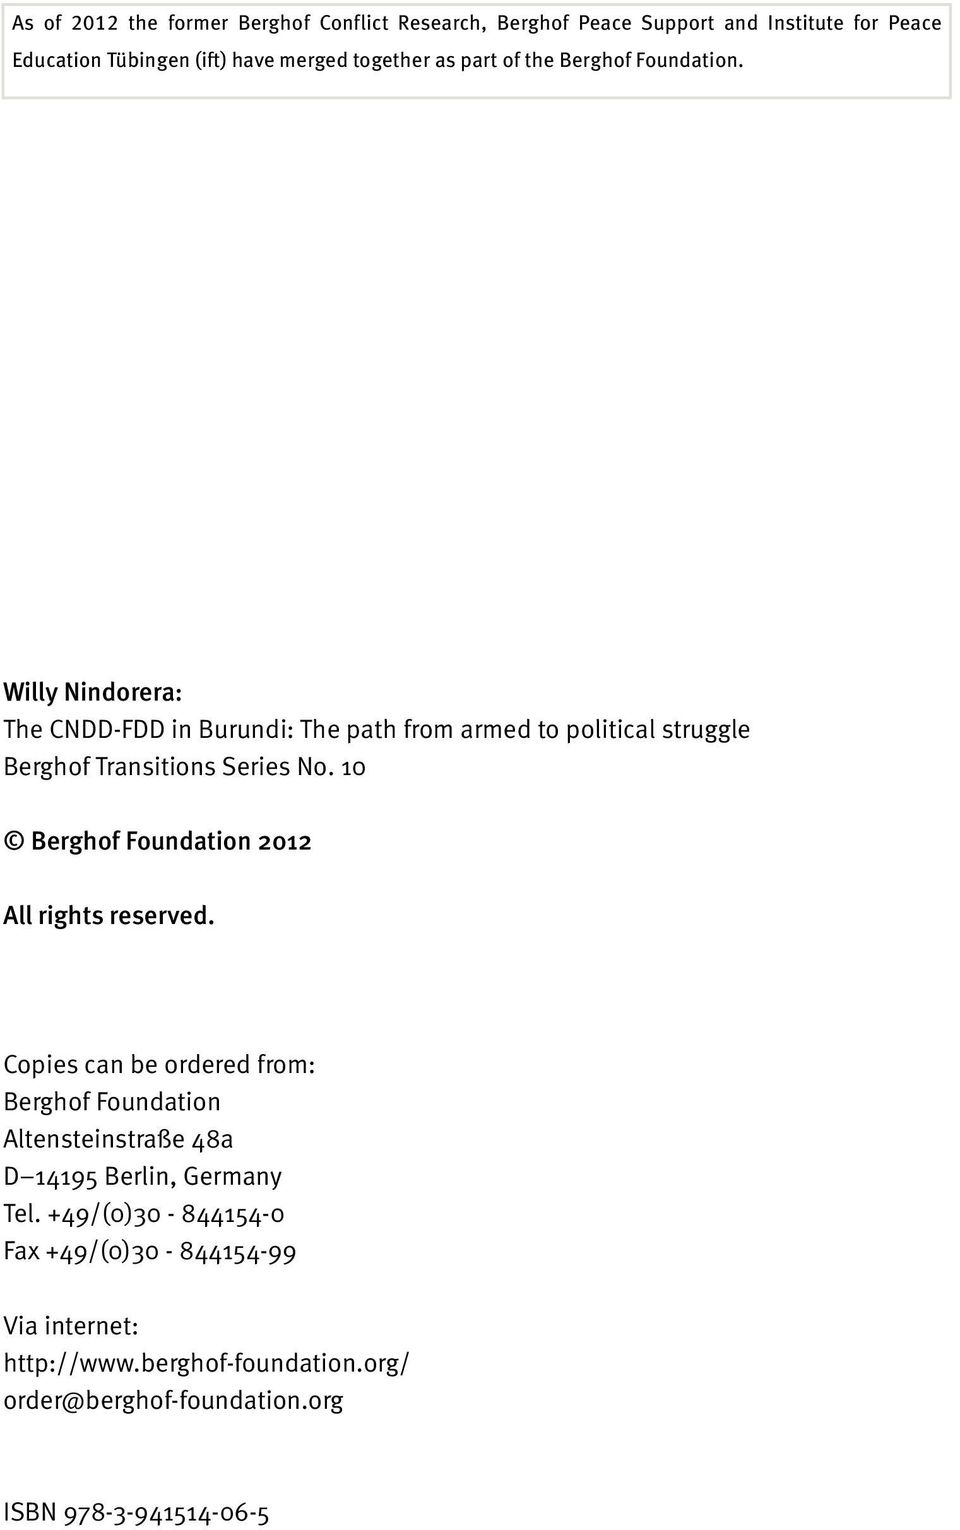 Willy Nindorera: The CNDD-FDD in Burundi: The path from armed to political struggle Berghof Transitions Series No.